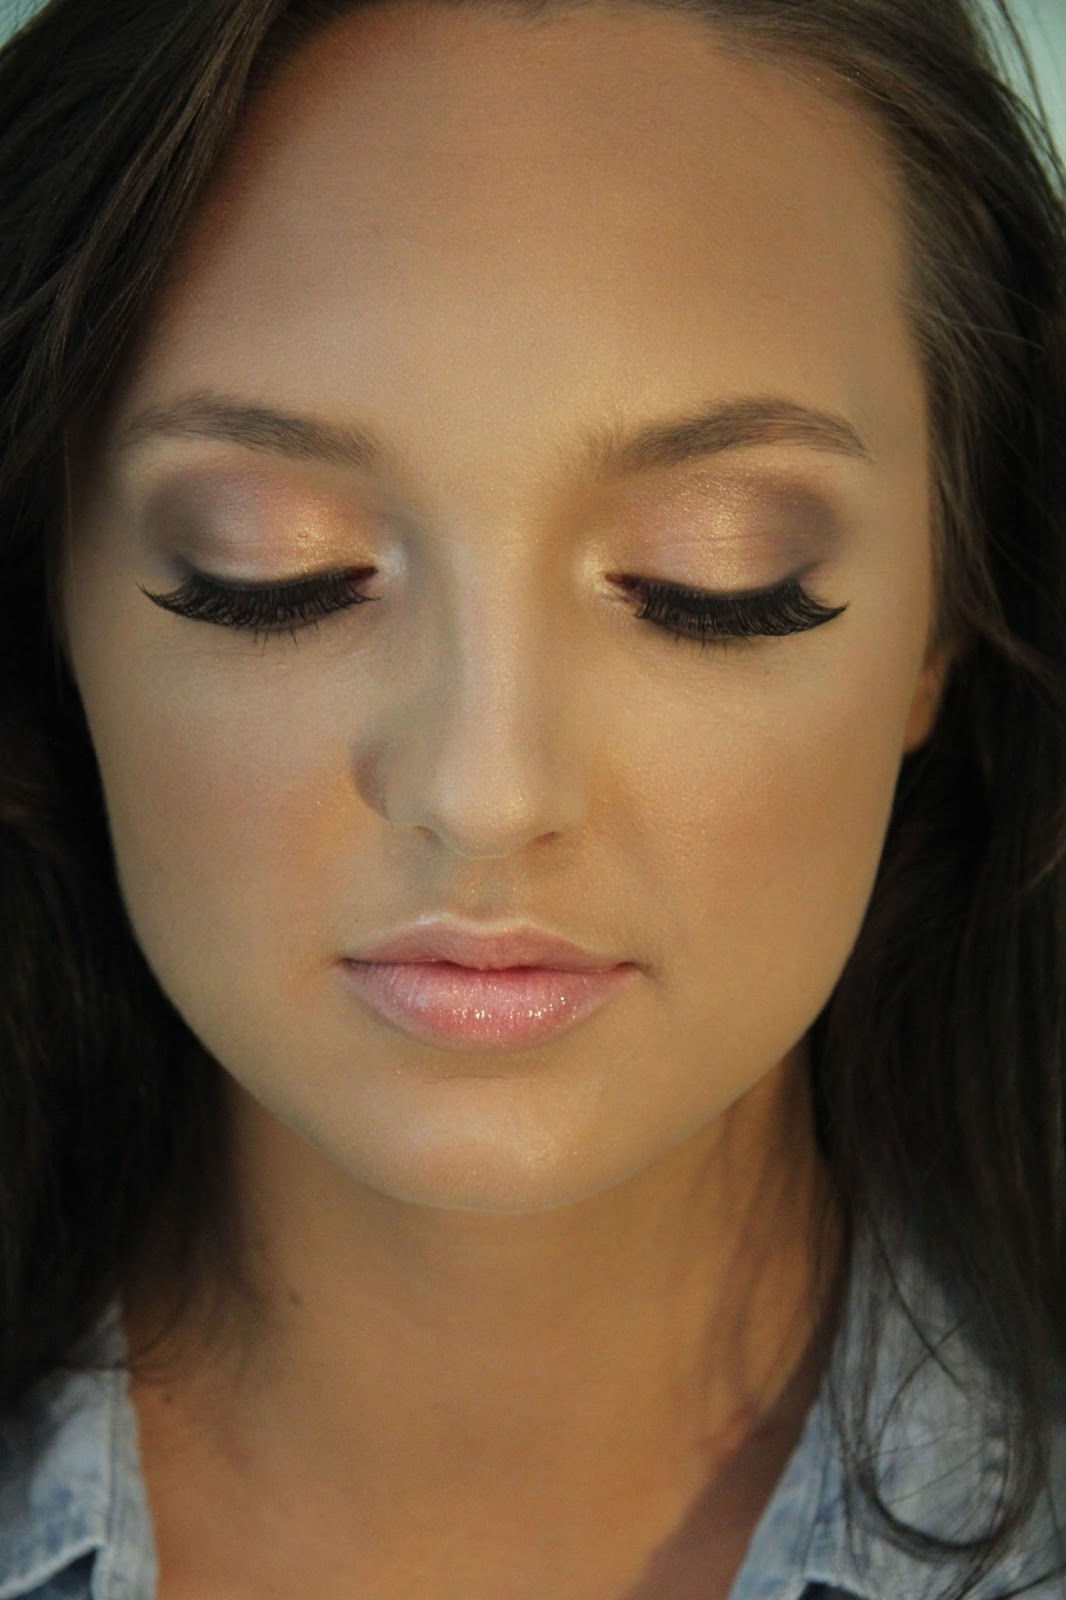 Pretty Makeup With The Eye Glitters 2052994: Pretty, Simple Makeup